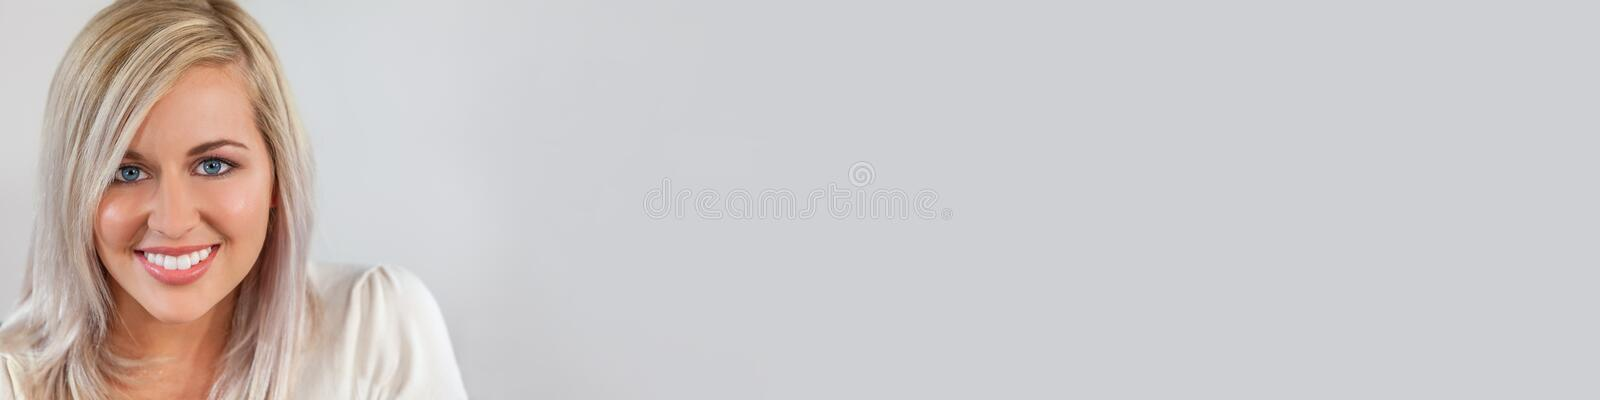 Panorama of Beautiful Blonde Girl Young Woman With Perfect Teeth stock images